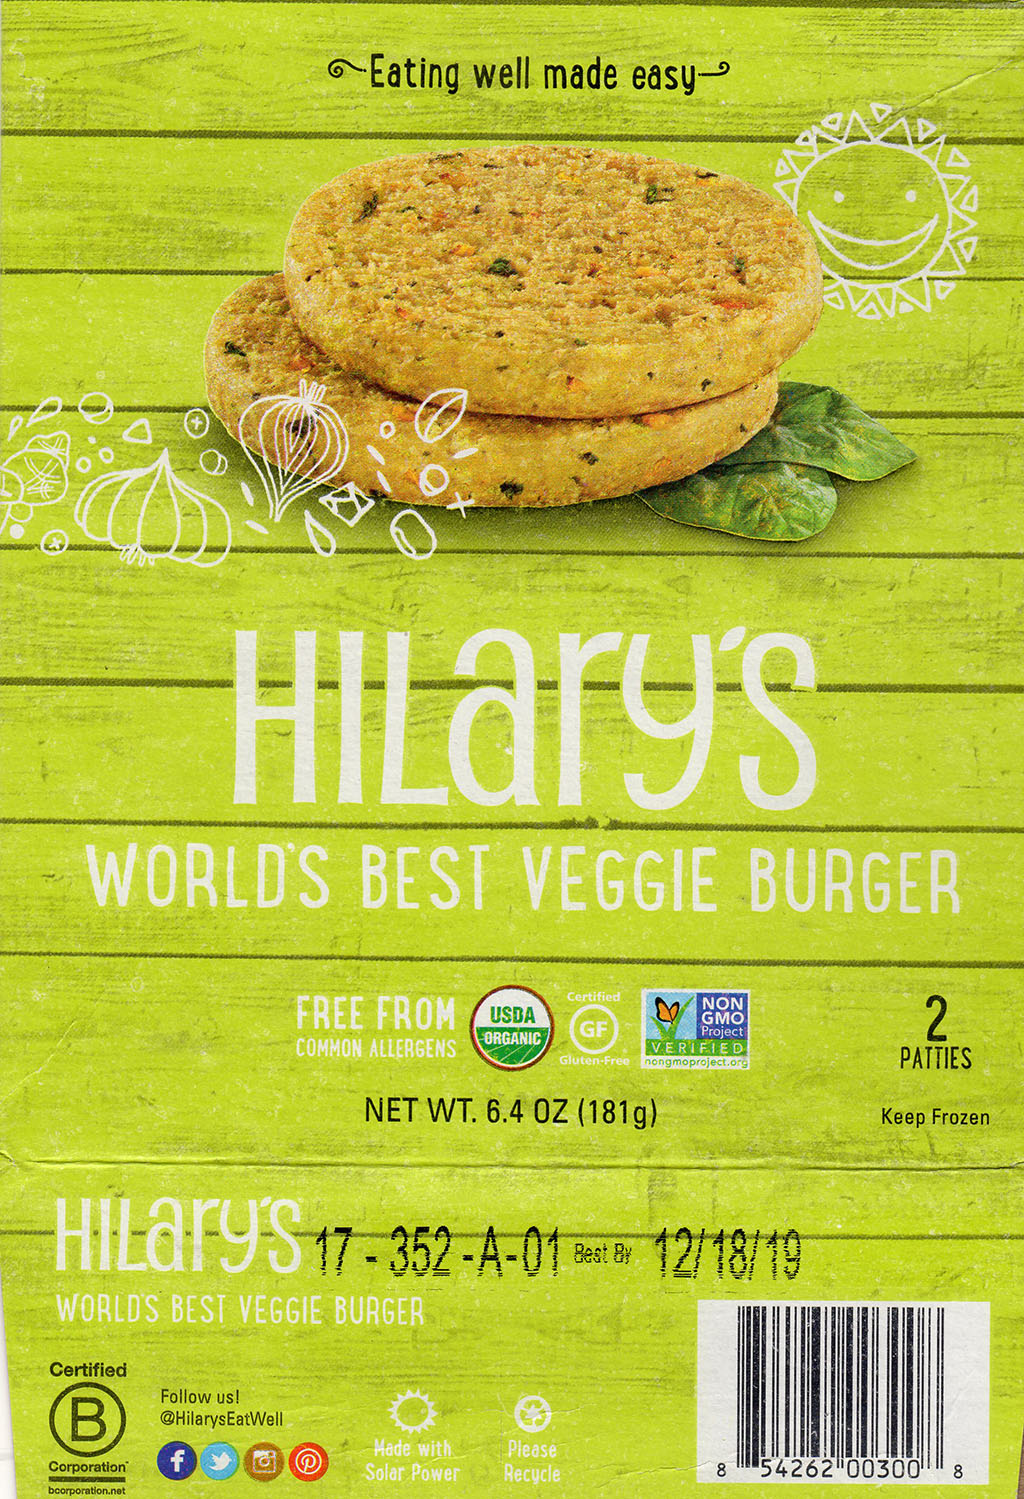 Hillary's Worlds Best Veggie Burger package front